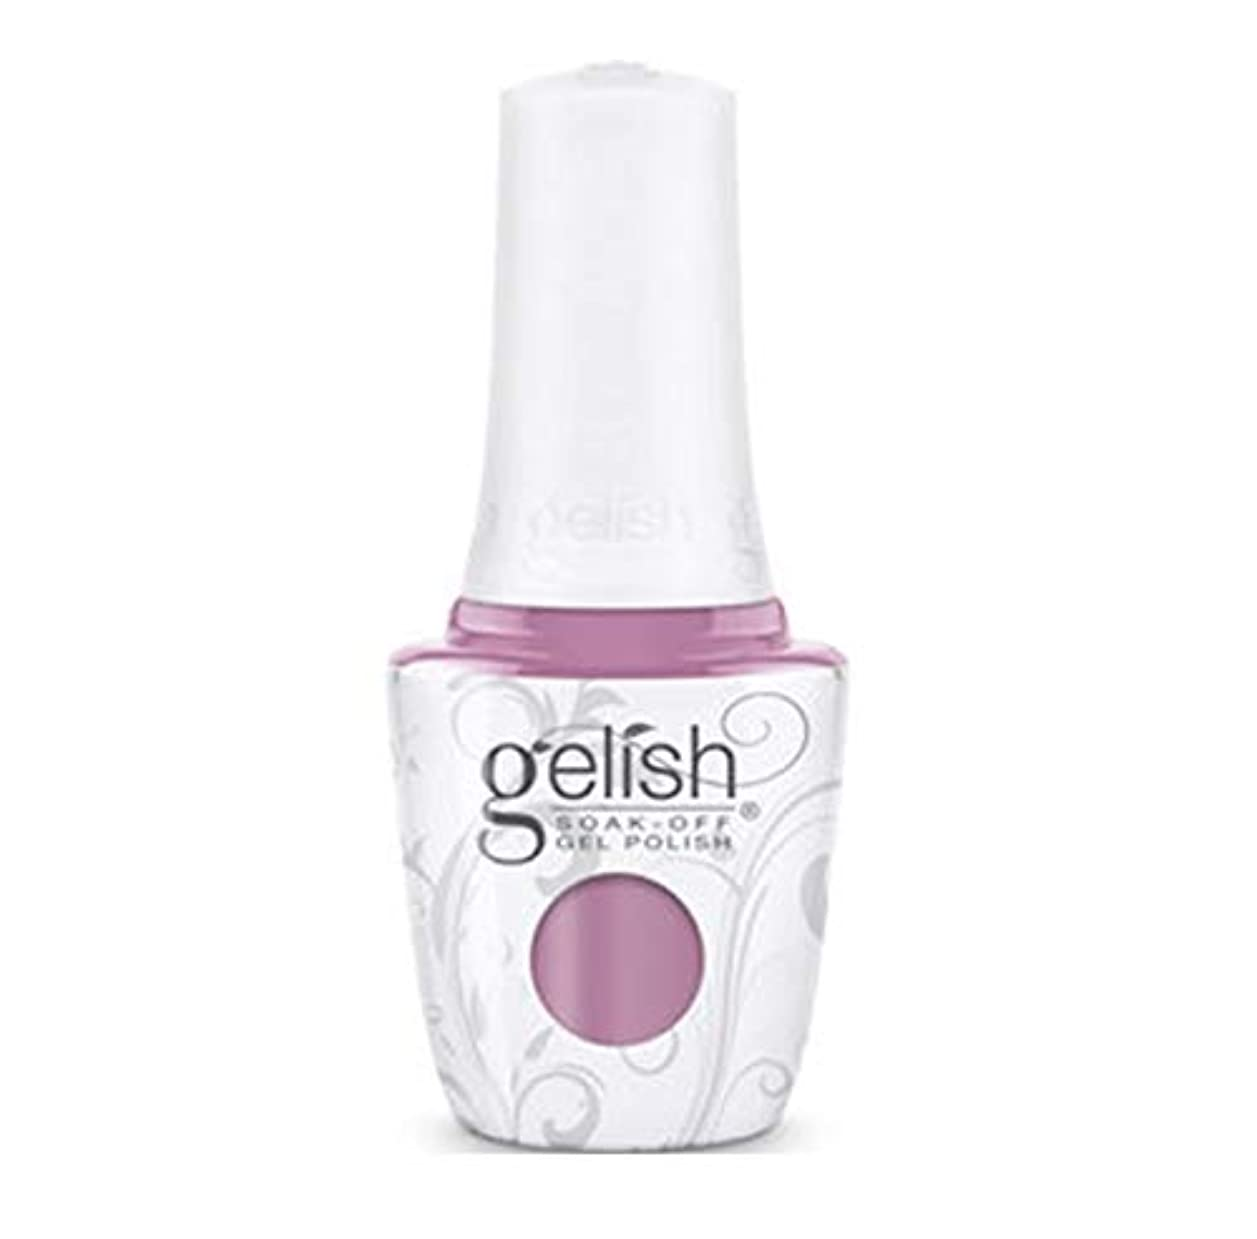 広告水銀の苦悩Harmony Gelish - The Color of Petals - Merci Bouquet - 15 mL / 0.5 oz